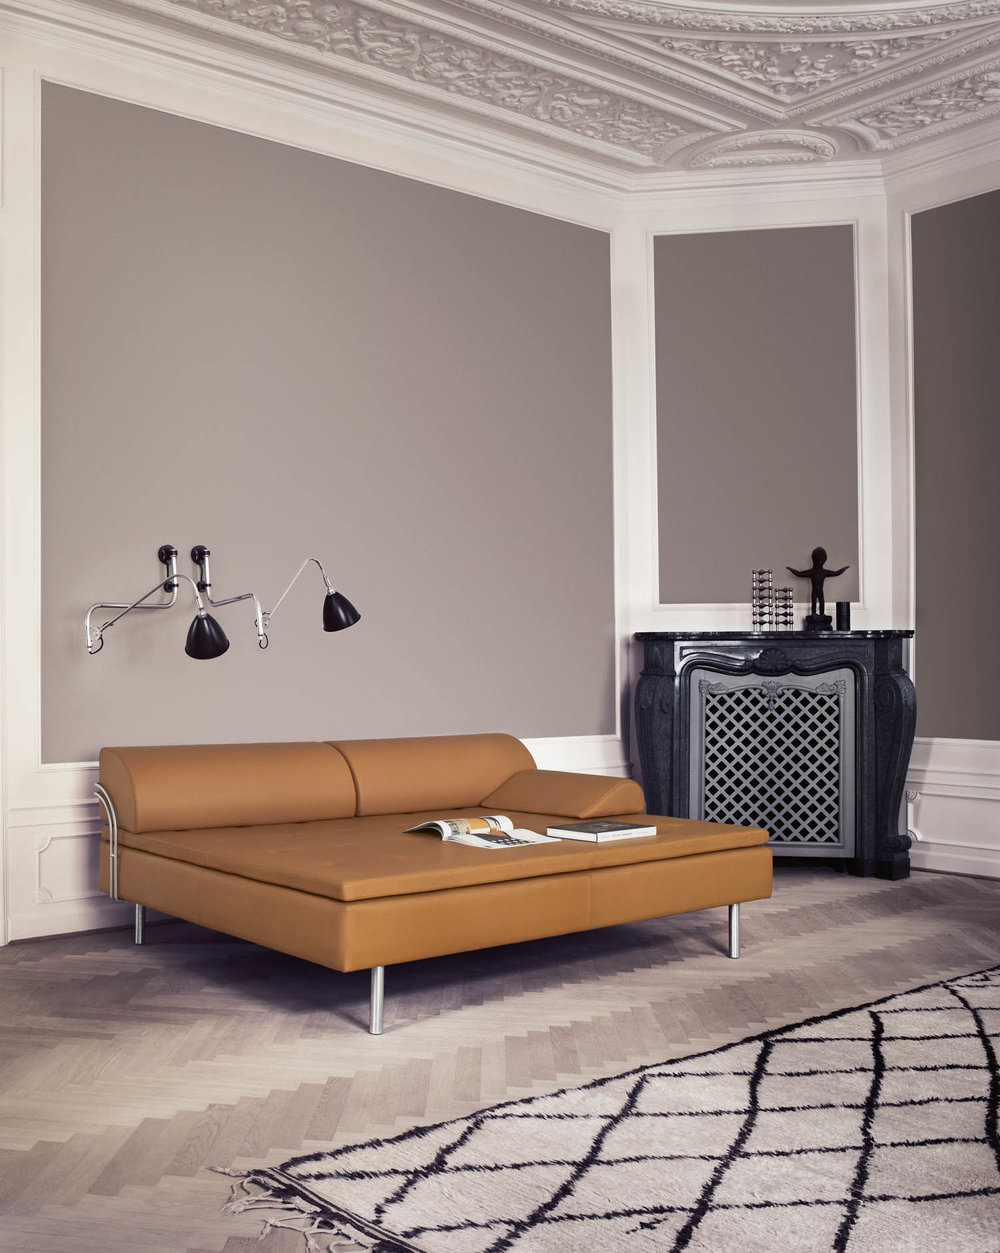 Diva daybed by Gubi and Bestlite wall lamps